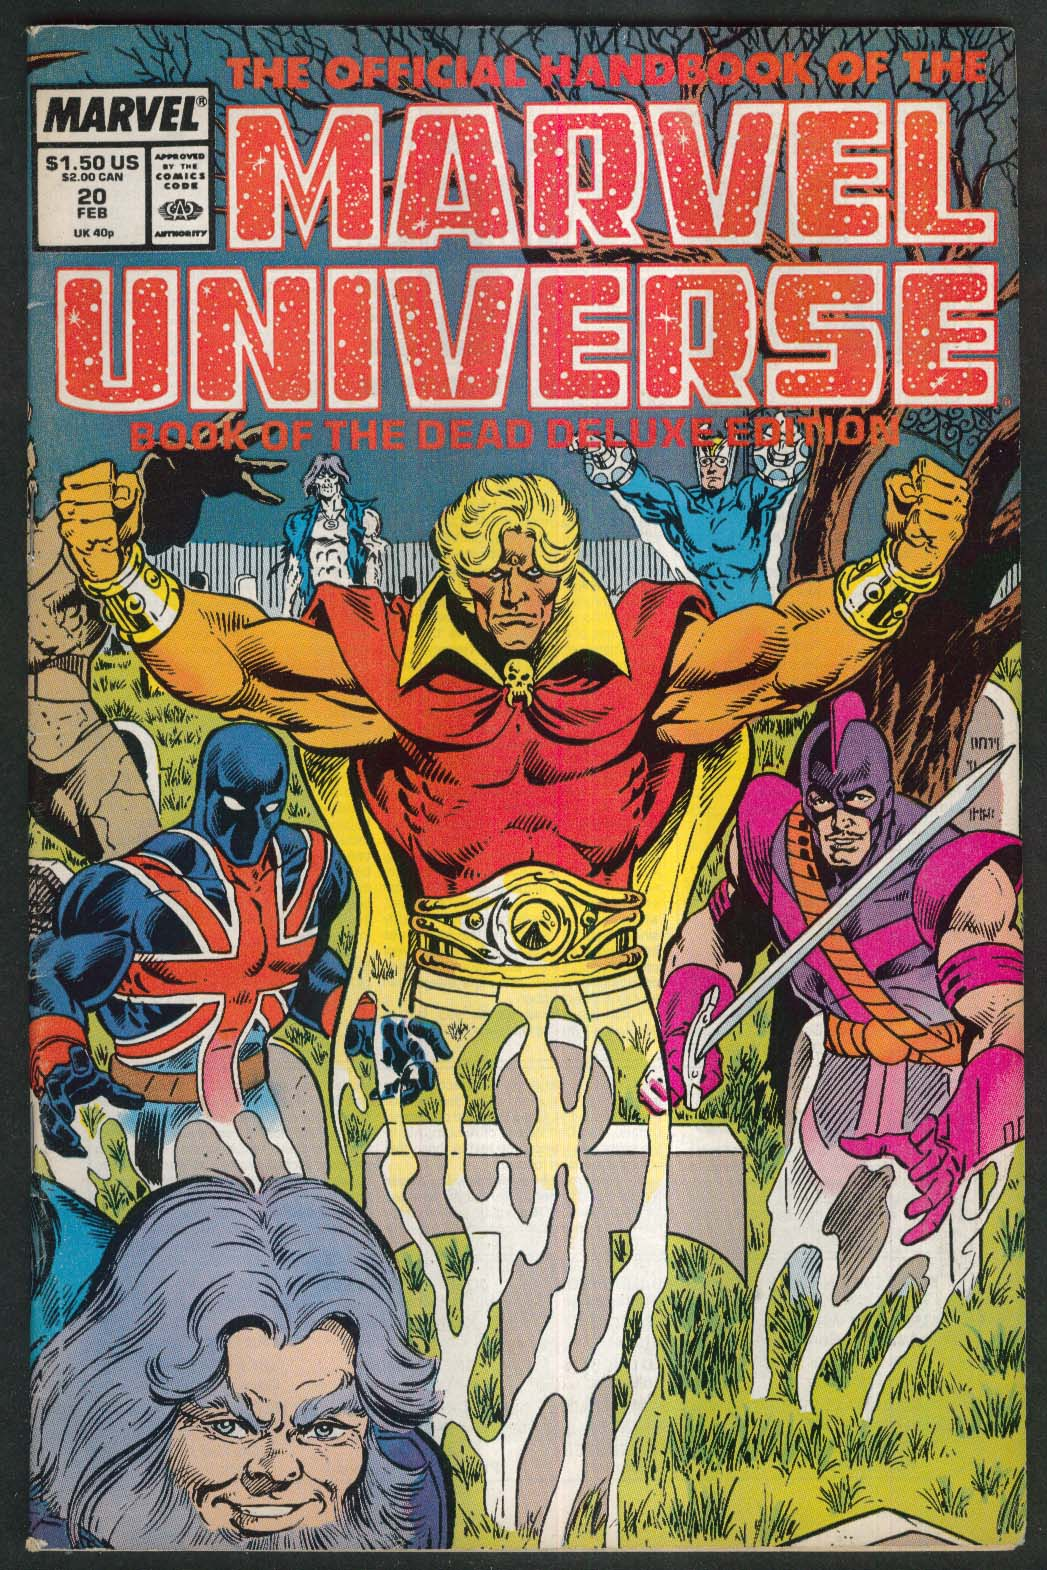 The Official Handbook of the MARVEL UNIVERSE Vol 2 #20 comic book 2 1988